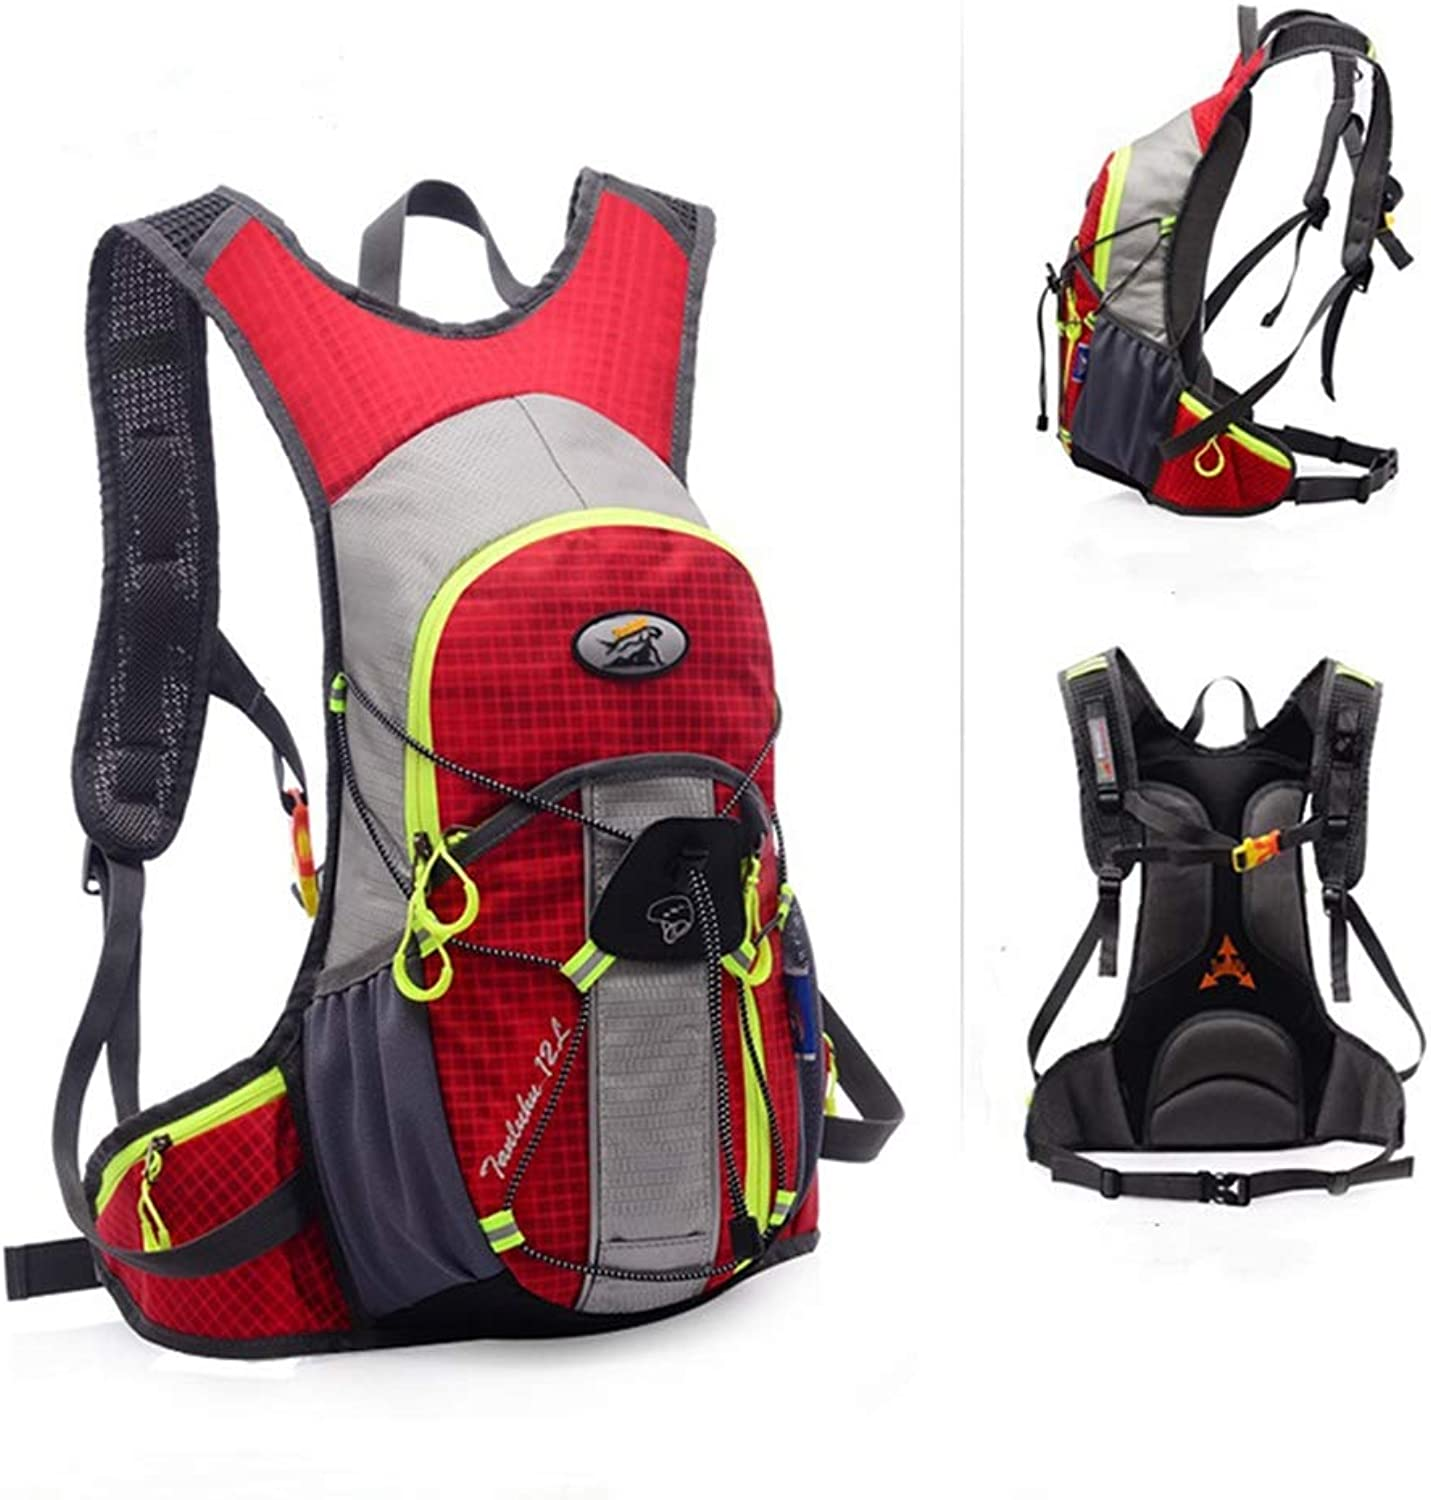 Professional Cycling Backpack, Bicycle Waterproof Backpack, Breathable Large-Capacity Backpack, Water Bag Backpack,Red